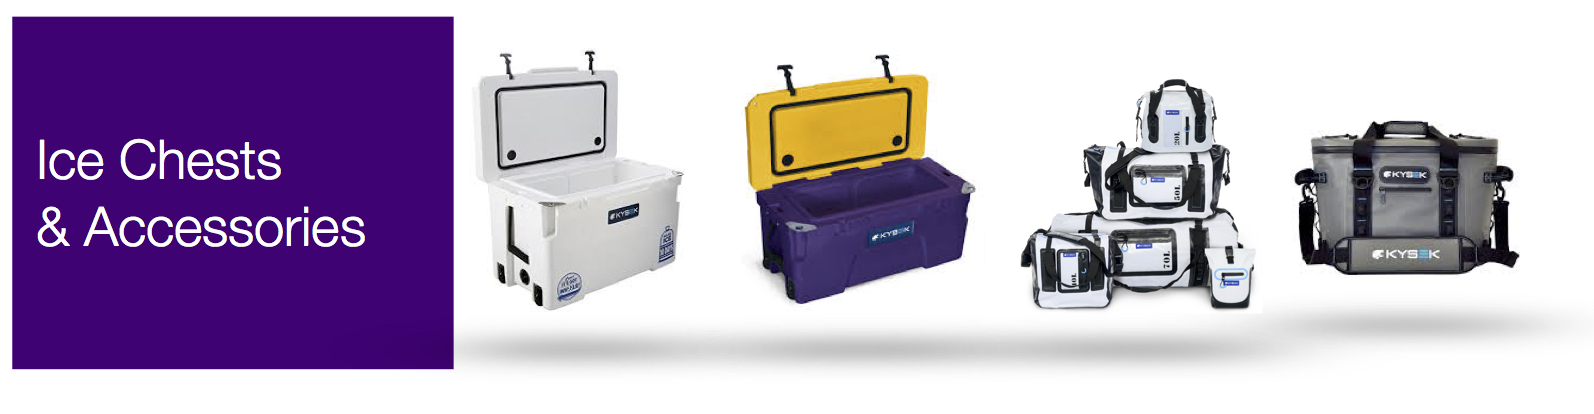 Southern Electronics Ice Chests & Dry Bags